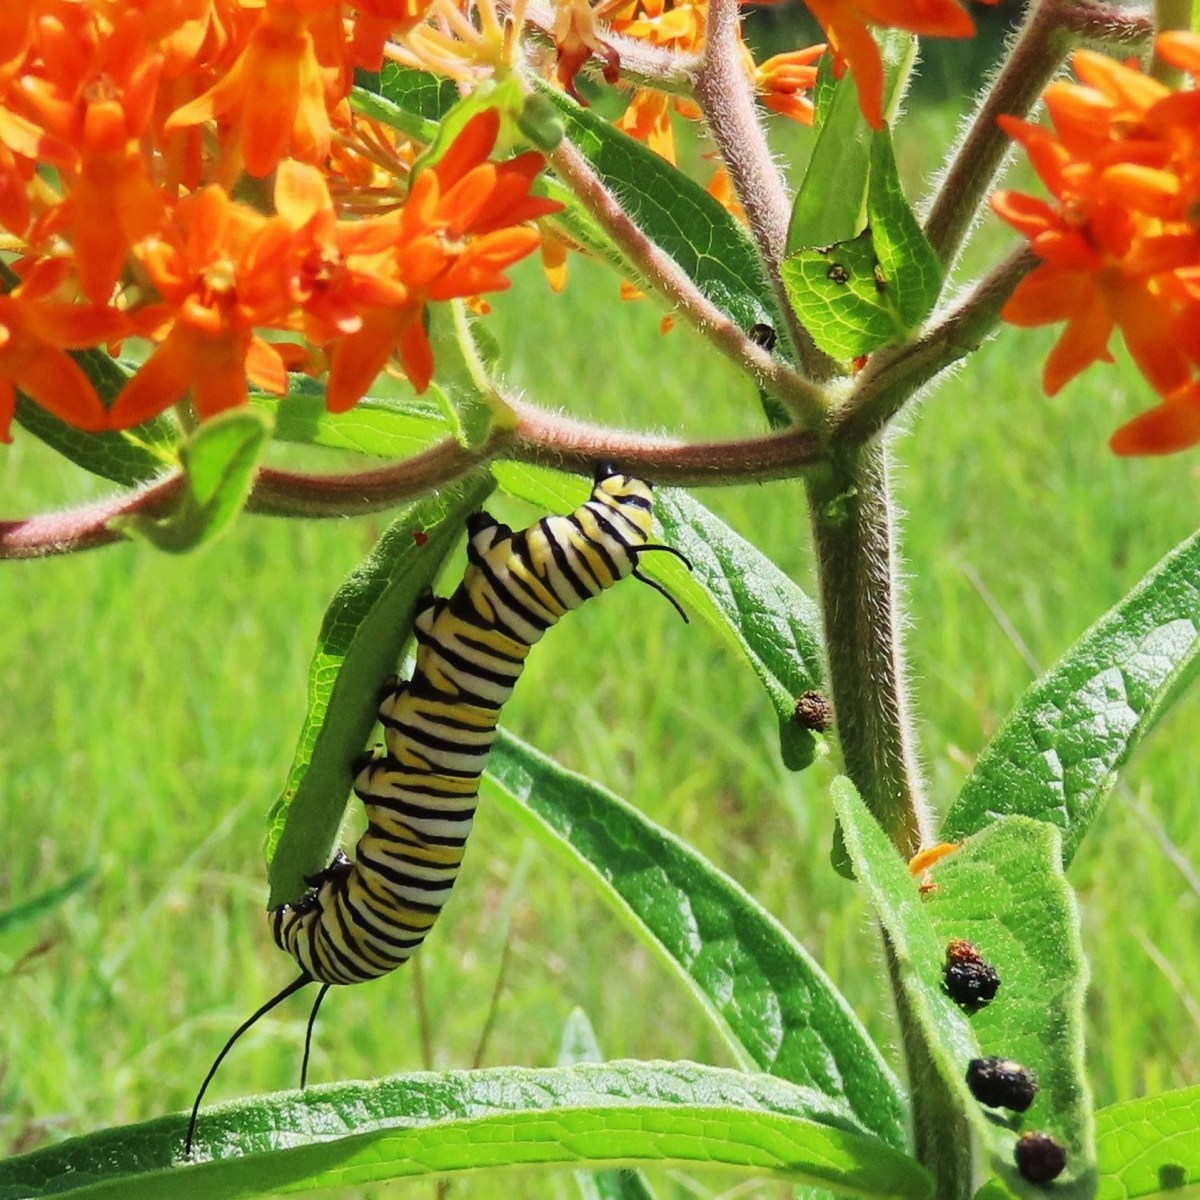 A caterpillar and frass (caterpillar poop) on butterfly weed leaves